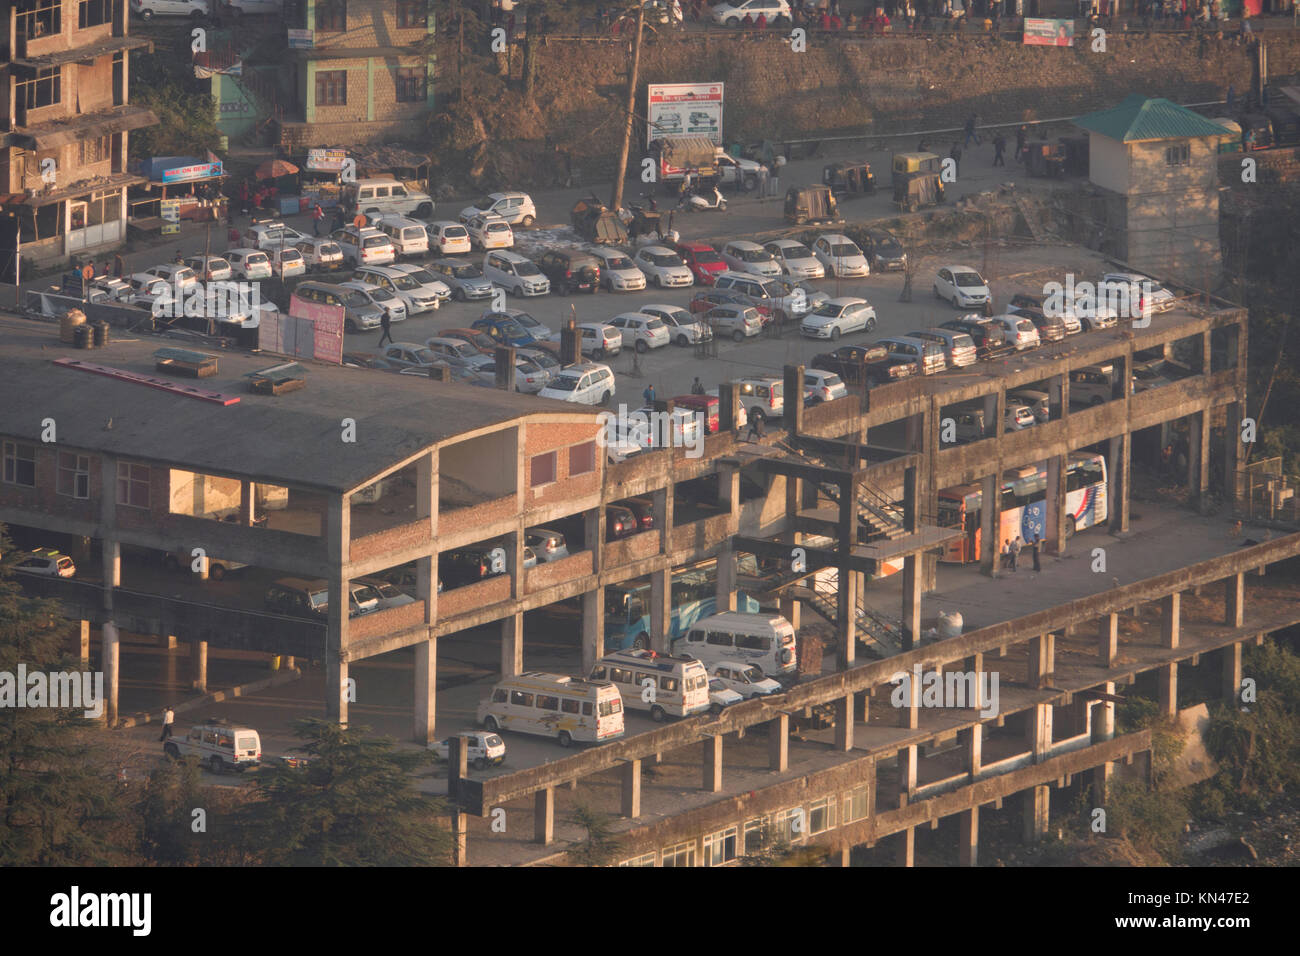 Unfinished multi level building used for vehicle parking in Mcleod Ganj, India - Stock Image